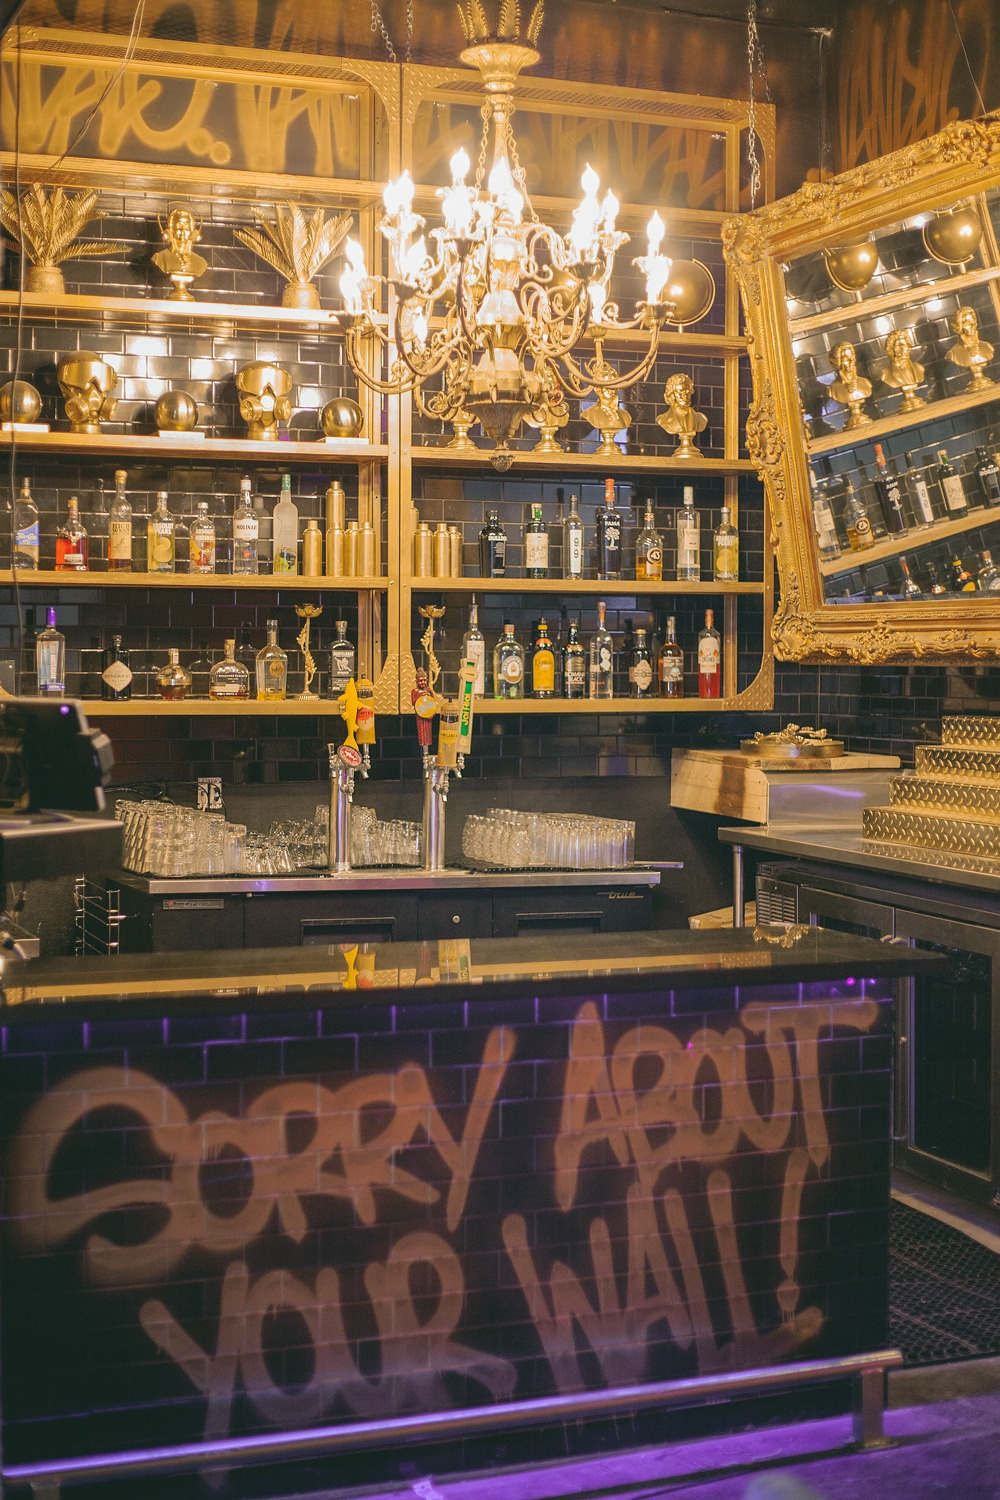 Graffiti-Inspired Bar Vandalo Wynwood Opens In Wynwood